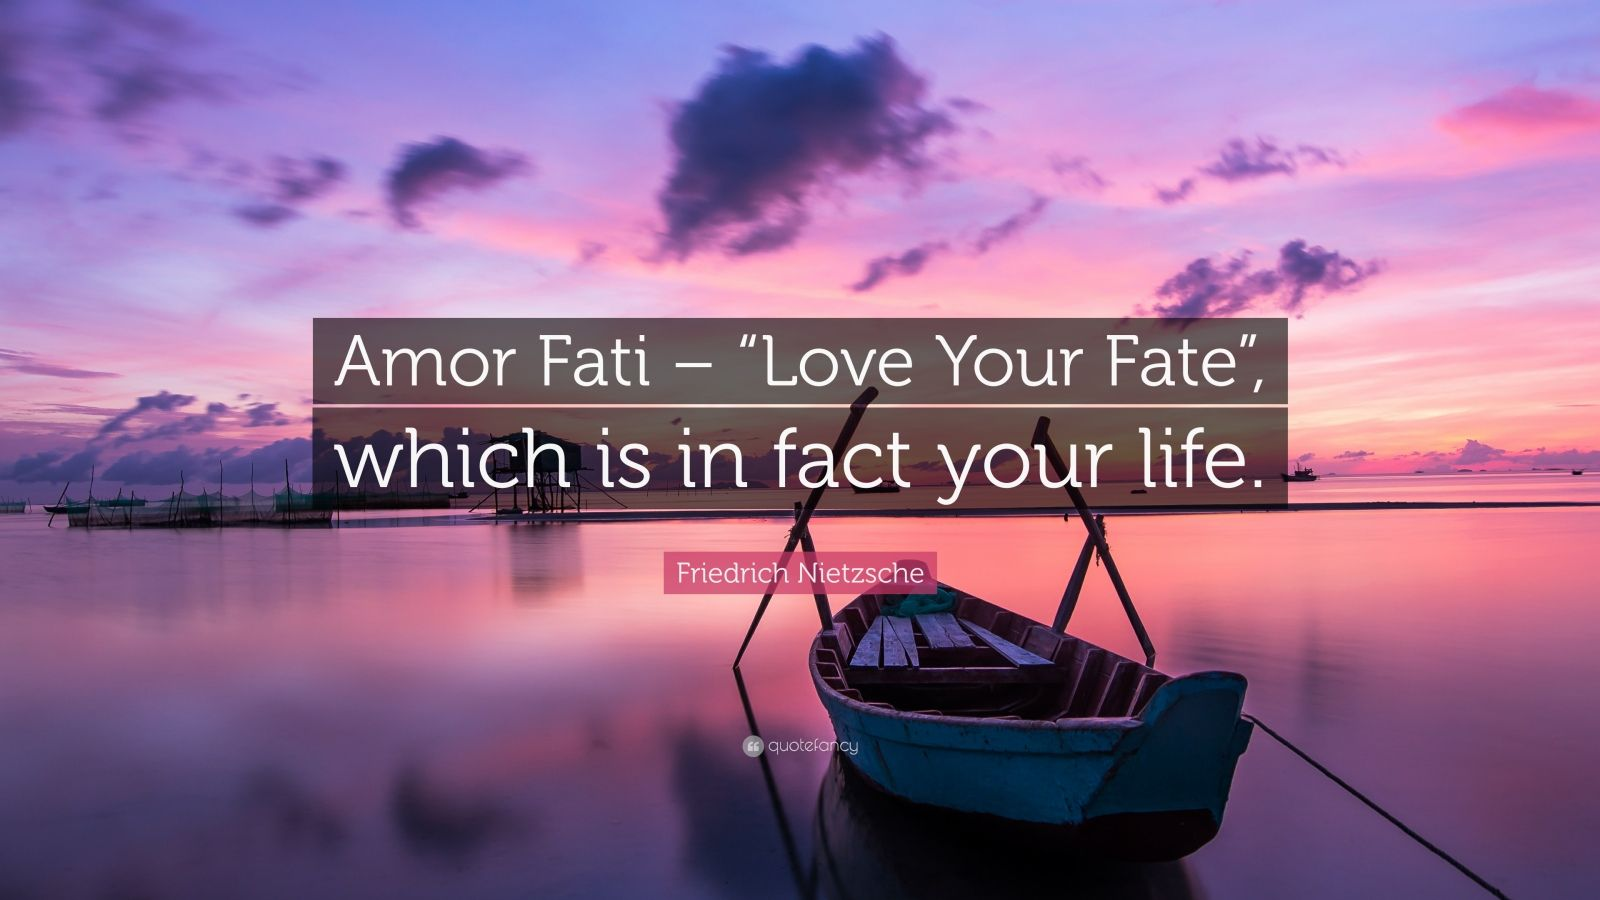 """amor fati essay Star wars and important step essay the goddess (who is incarnate in every woman) is the final test of the talent of the hero to win the boon of love (charity: amor fati), which is life itself enjoyed as the encasement of eternity""""."""